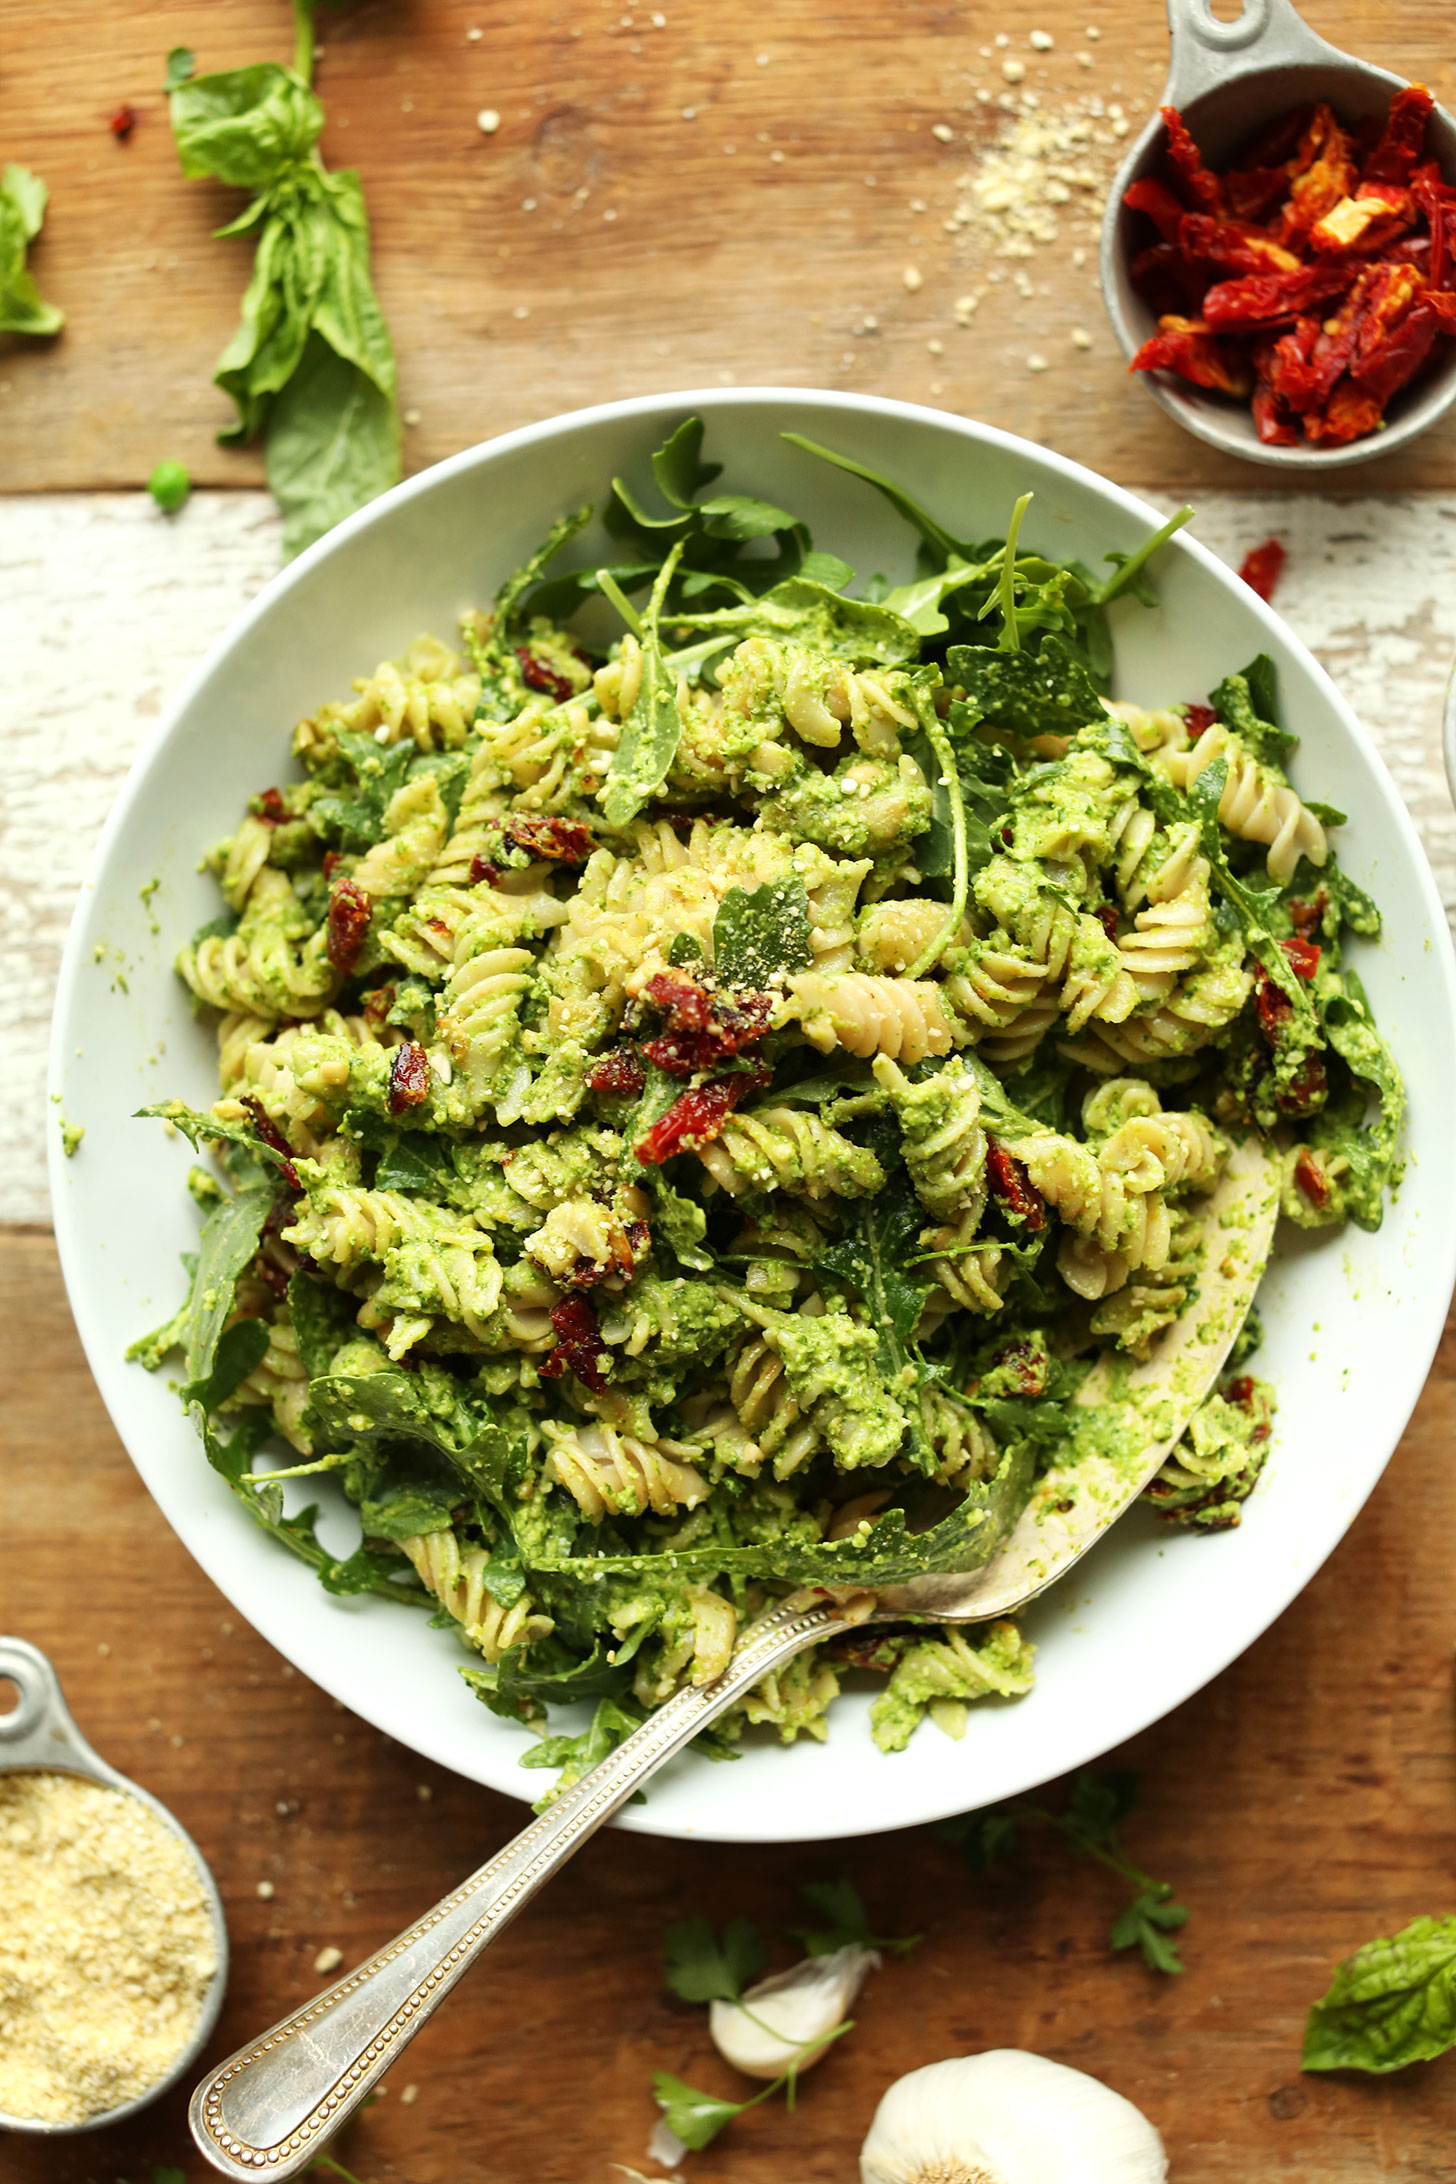 Big bowl filled with gluten-free vegan Pea Pesto Pasta with Sun-Dried Tomatoes and Arugula